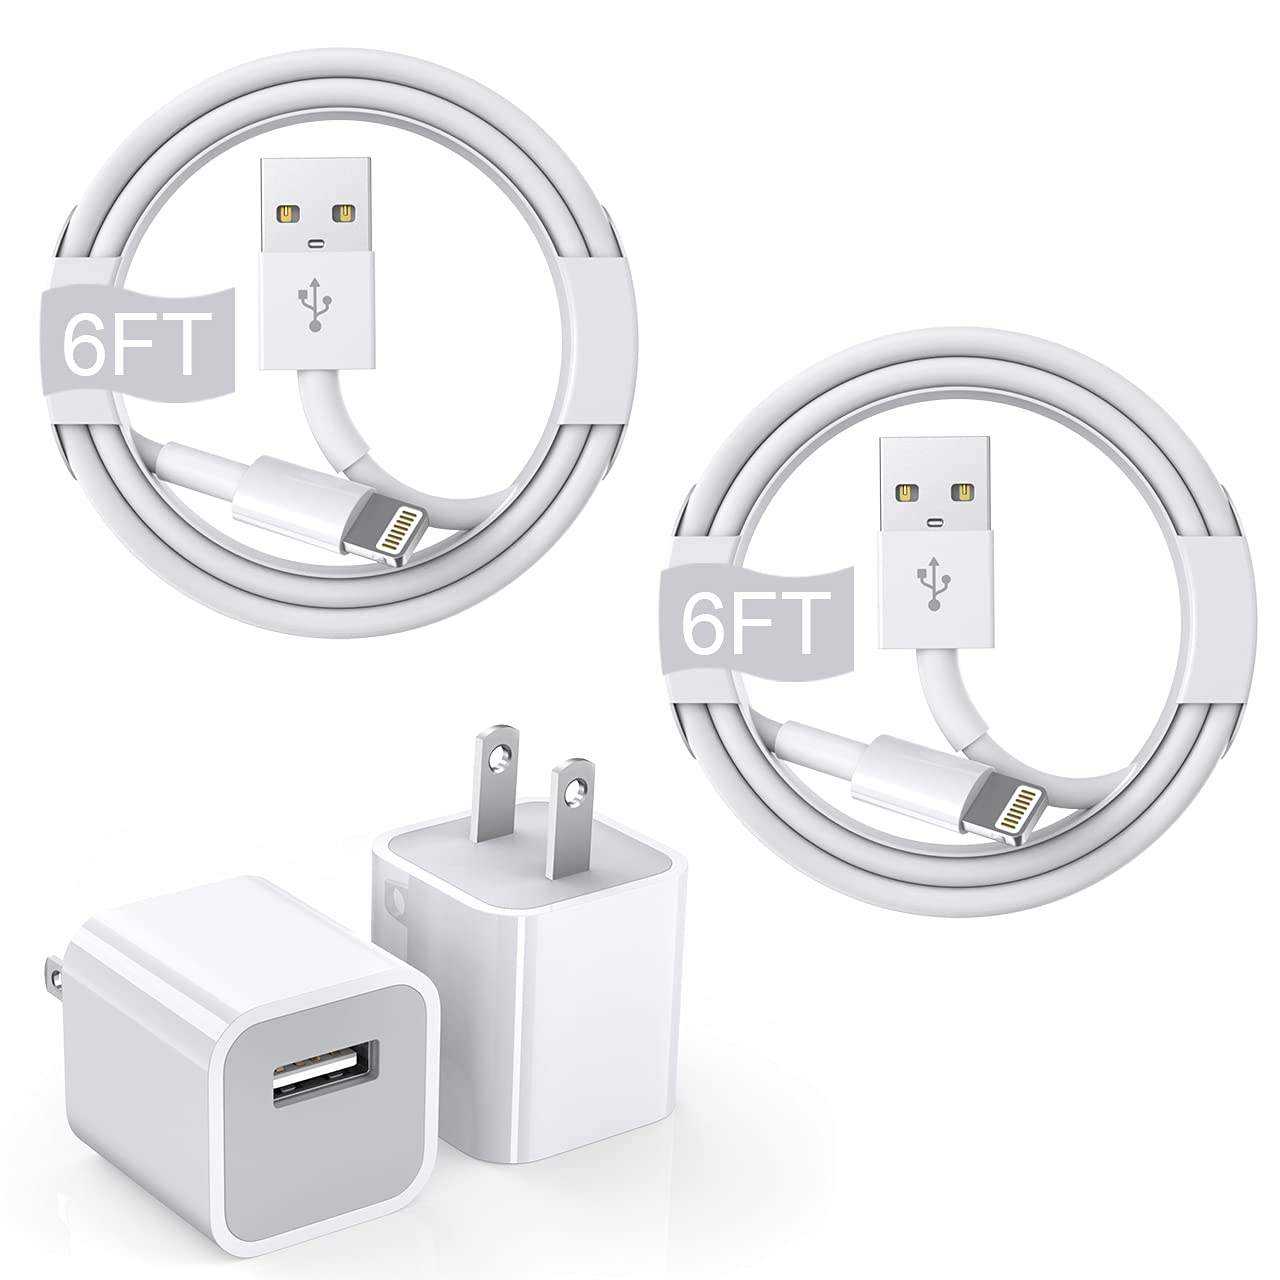 iPhone Charger Cube, 6FT 2Pack [Apple Approved MFi Certified] Rapid Lightning Cable Cord with 2 Pack iPhone Quick Charging Box USB Wall Adapter for iPhone 6/7/8 Plus/12/11/11 Pro/Pro Max/SE 2020/Xs/XR